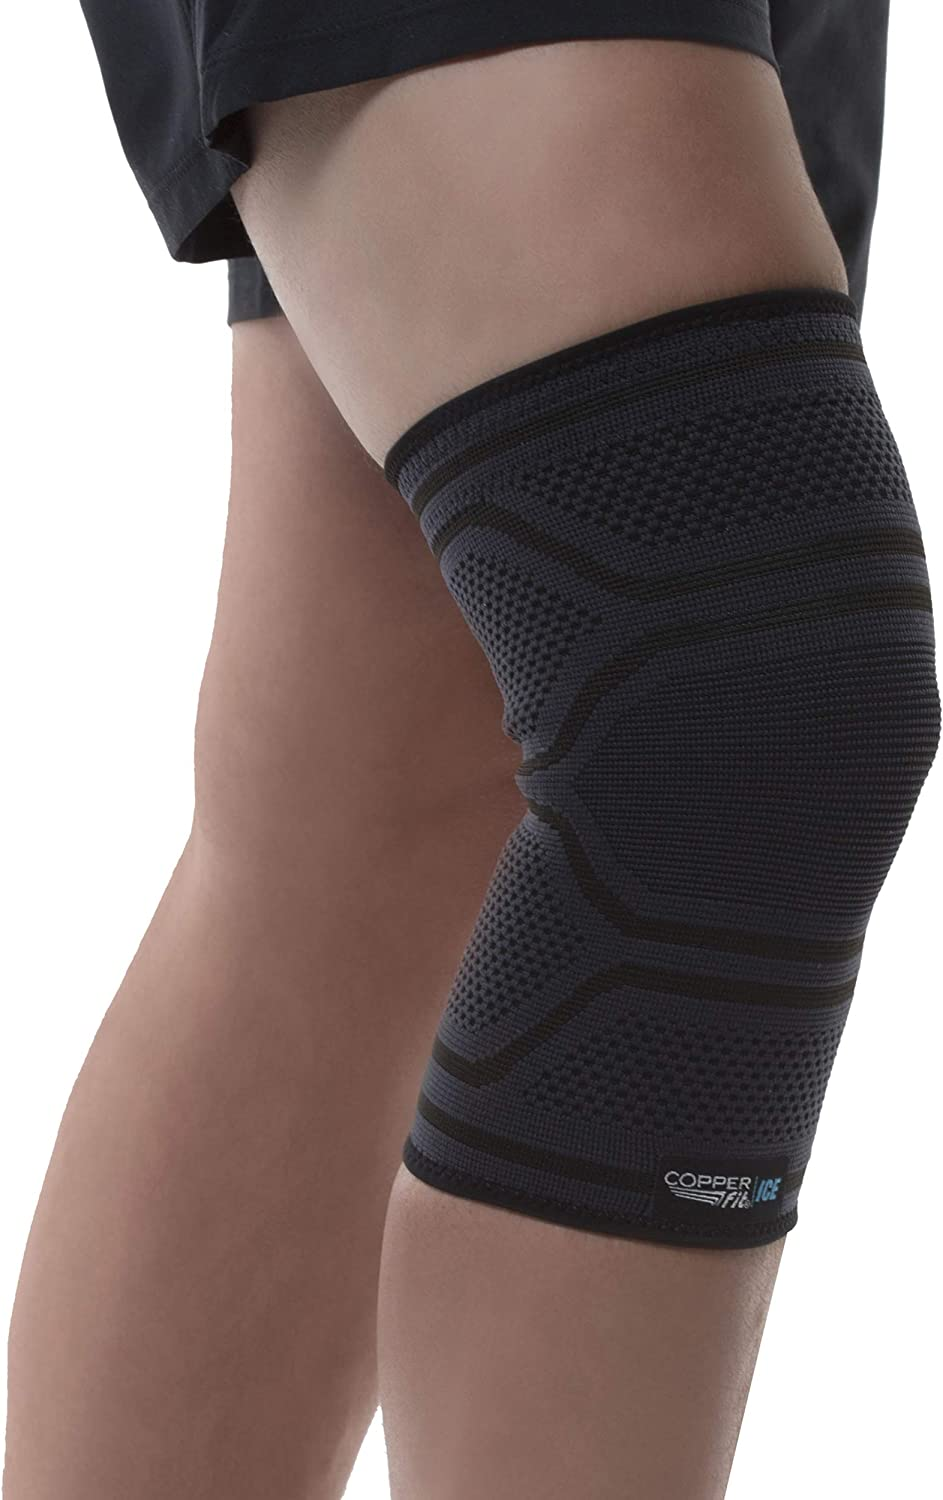 Copper Fit Ice Knit Compression Knee Sleeve Infused with Menthol and Coq10 for Recovery